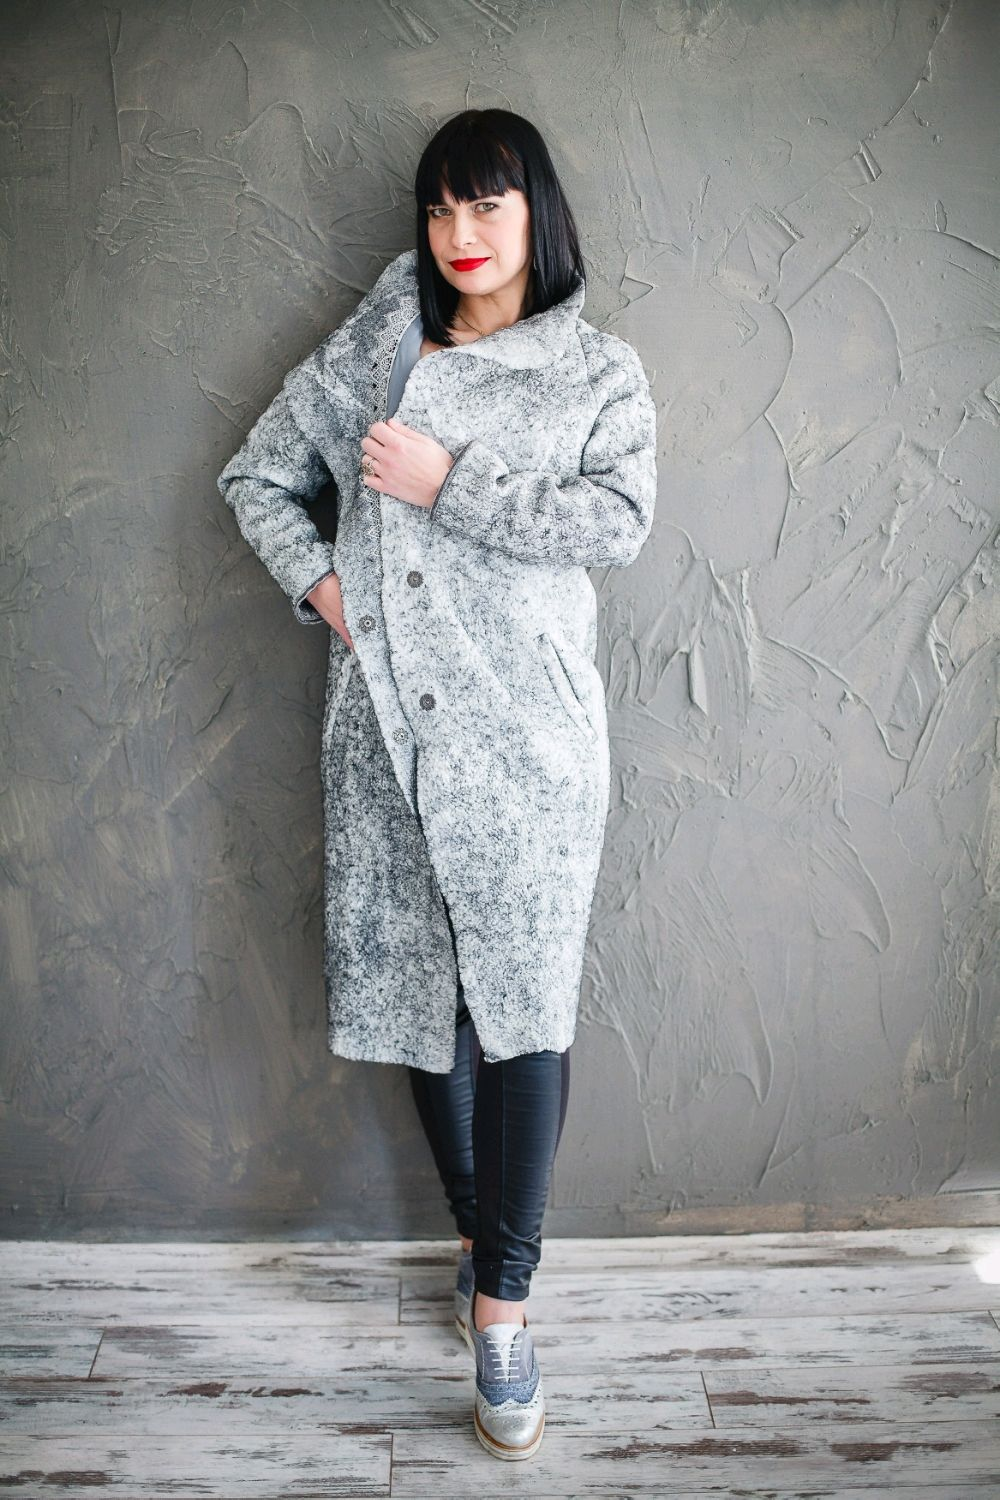 The severity of the coat in the style of military 19